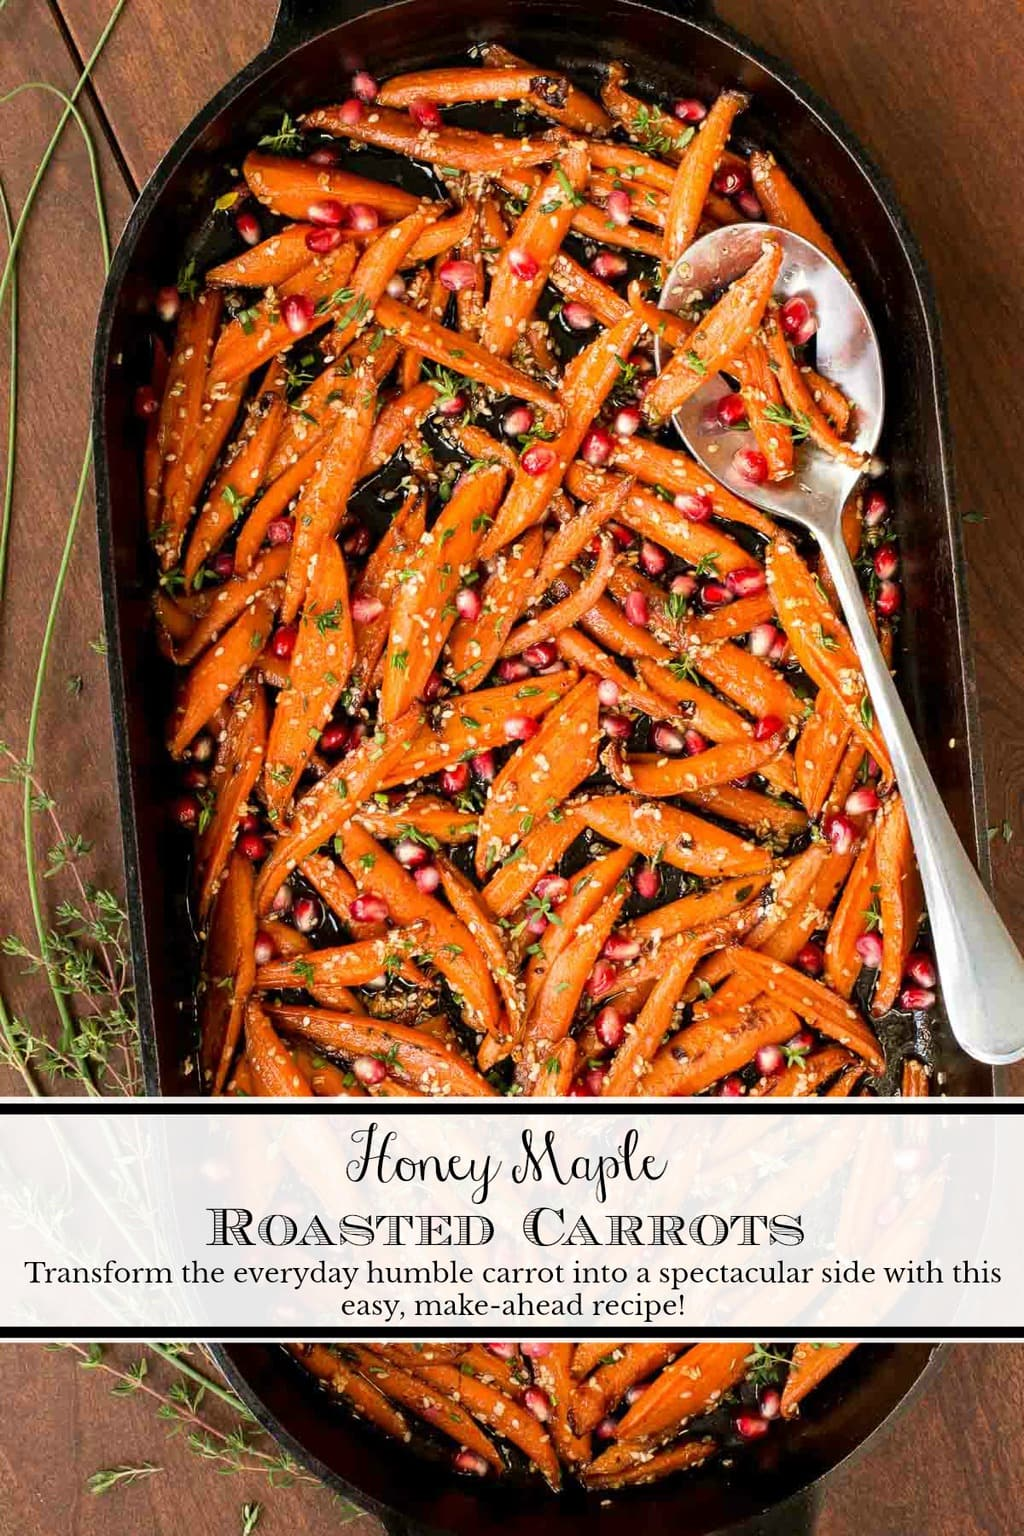 These carrots are like candy and transform the everyday humble carrot into something spectacular and super delicious! #roastedcarrots, #easyglazedcarrots